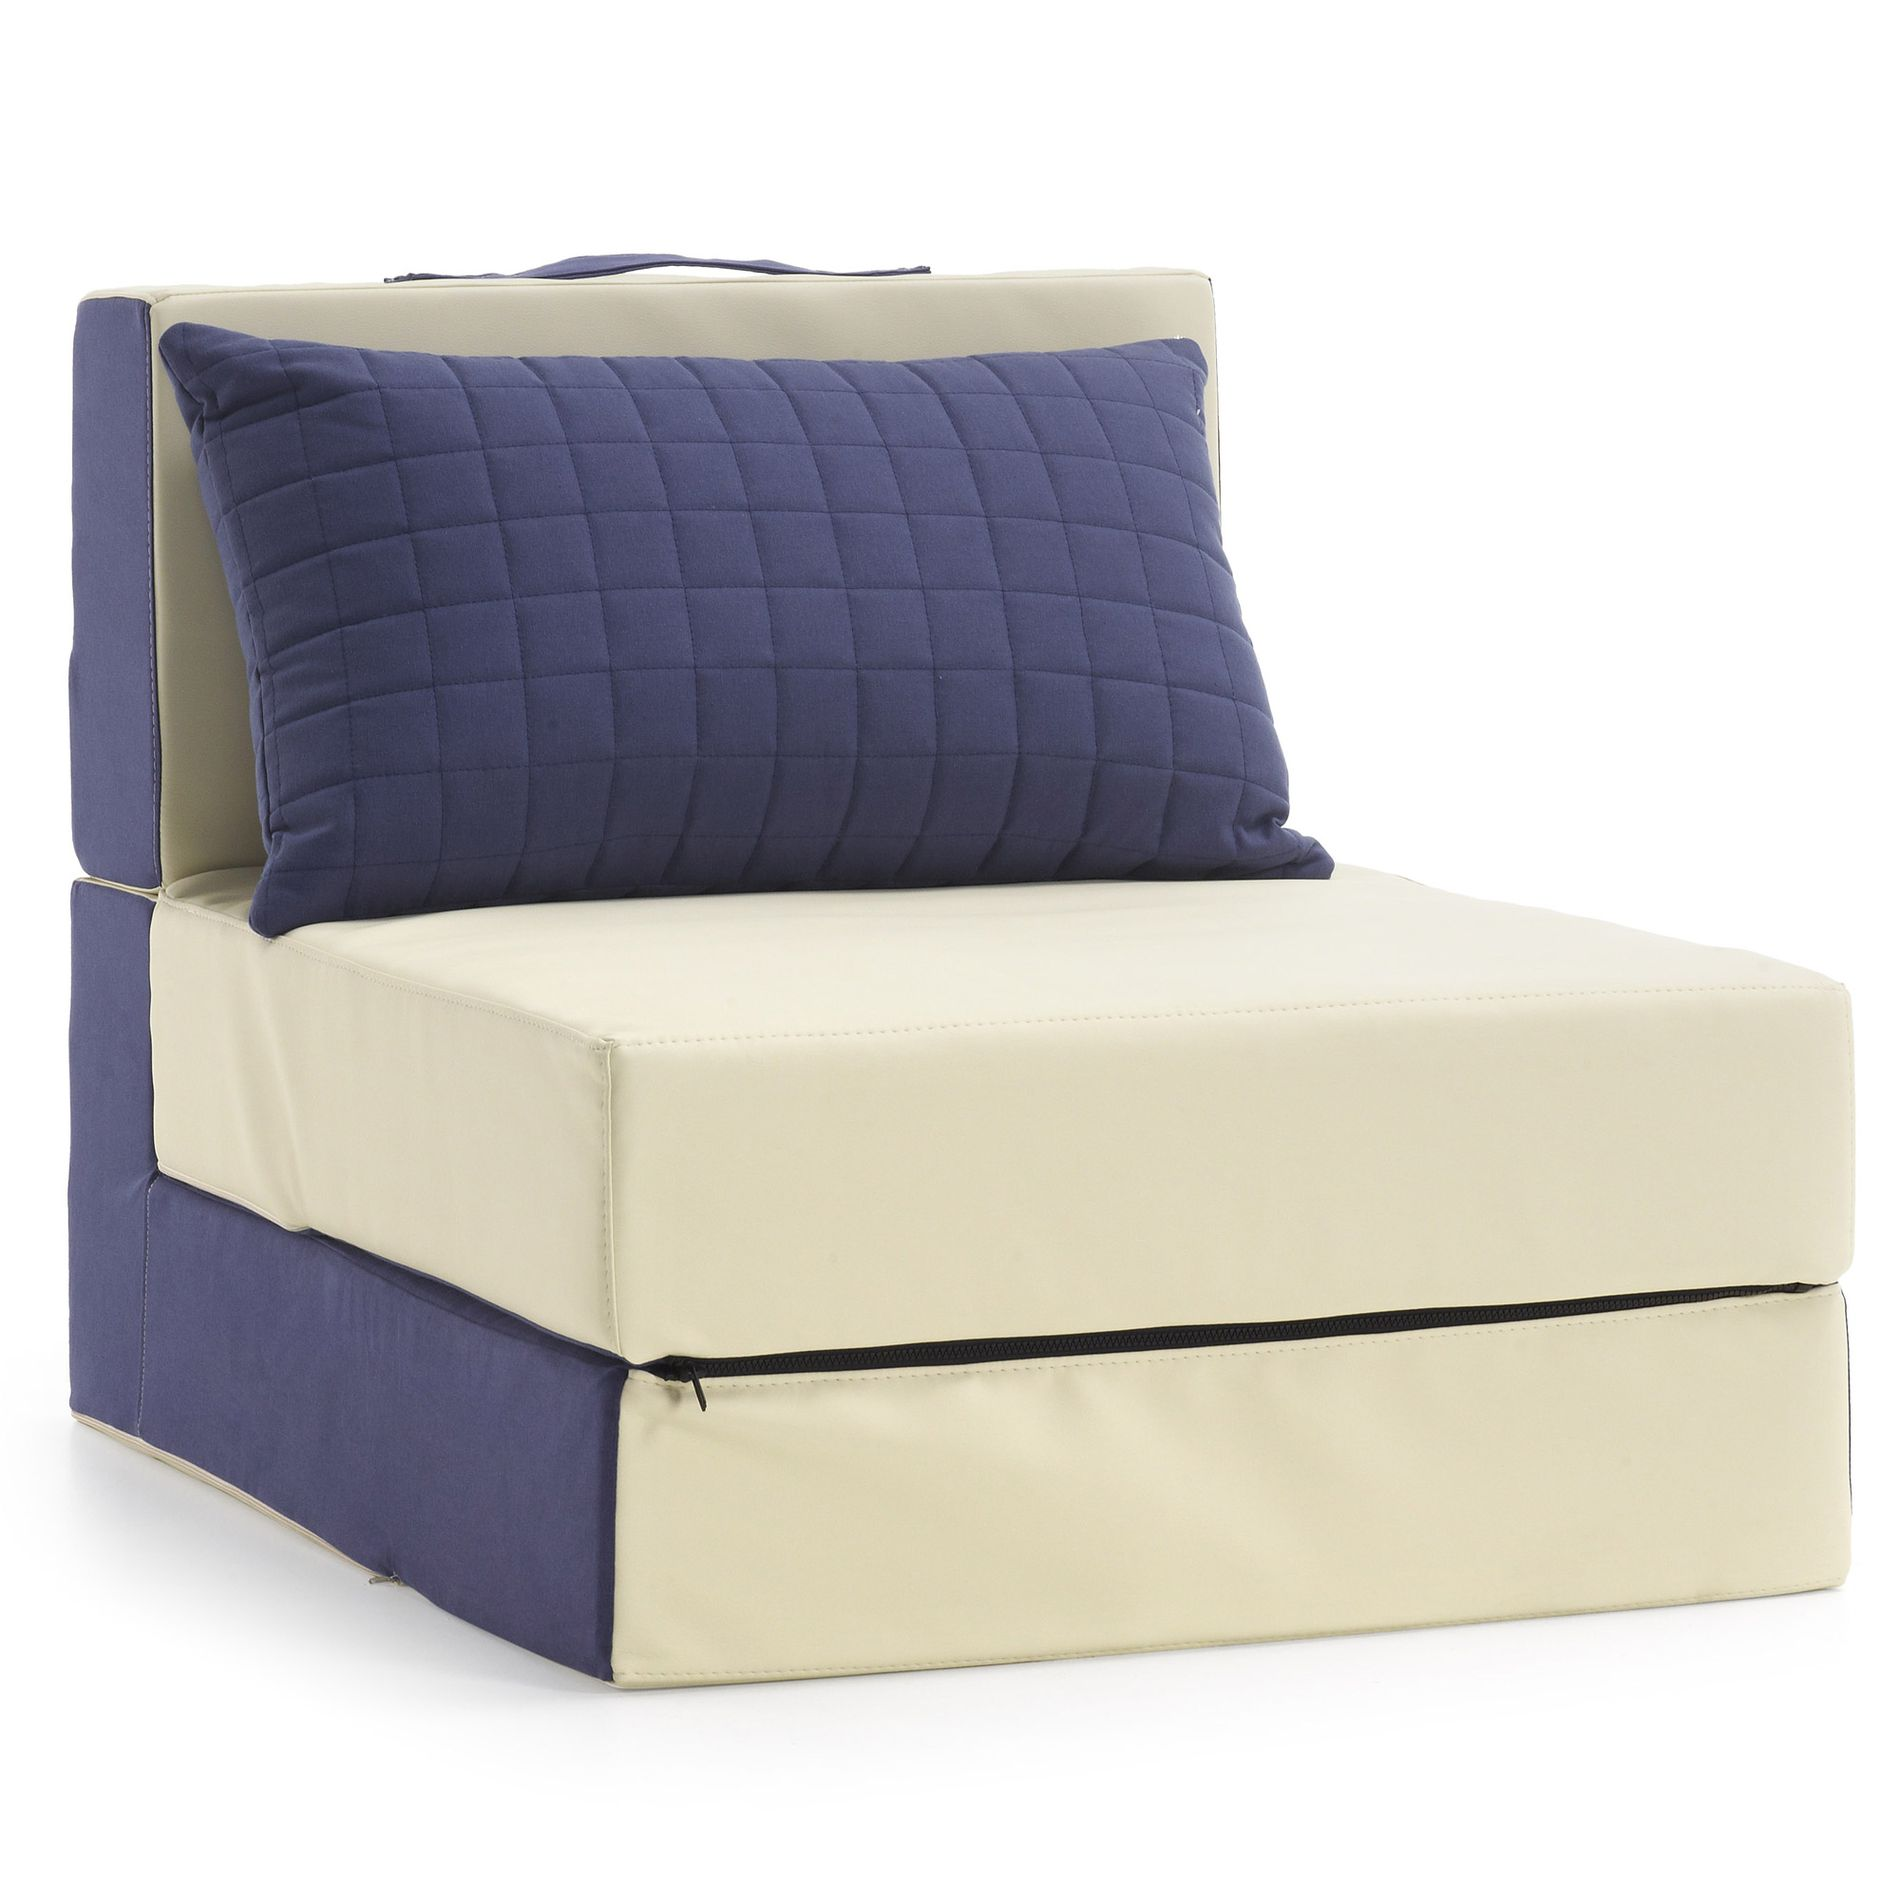 Arti Armchair Bed Blue And Beige Kave Home